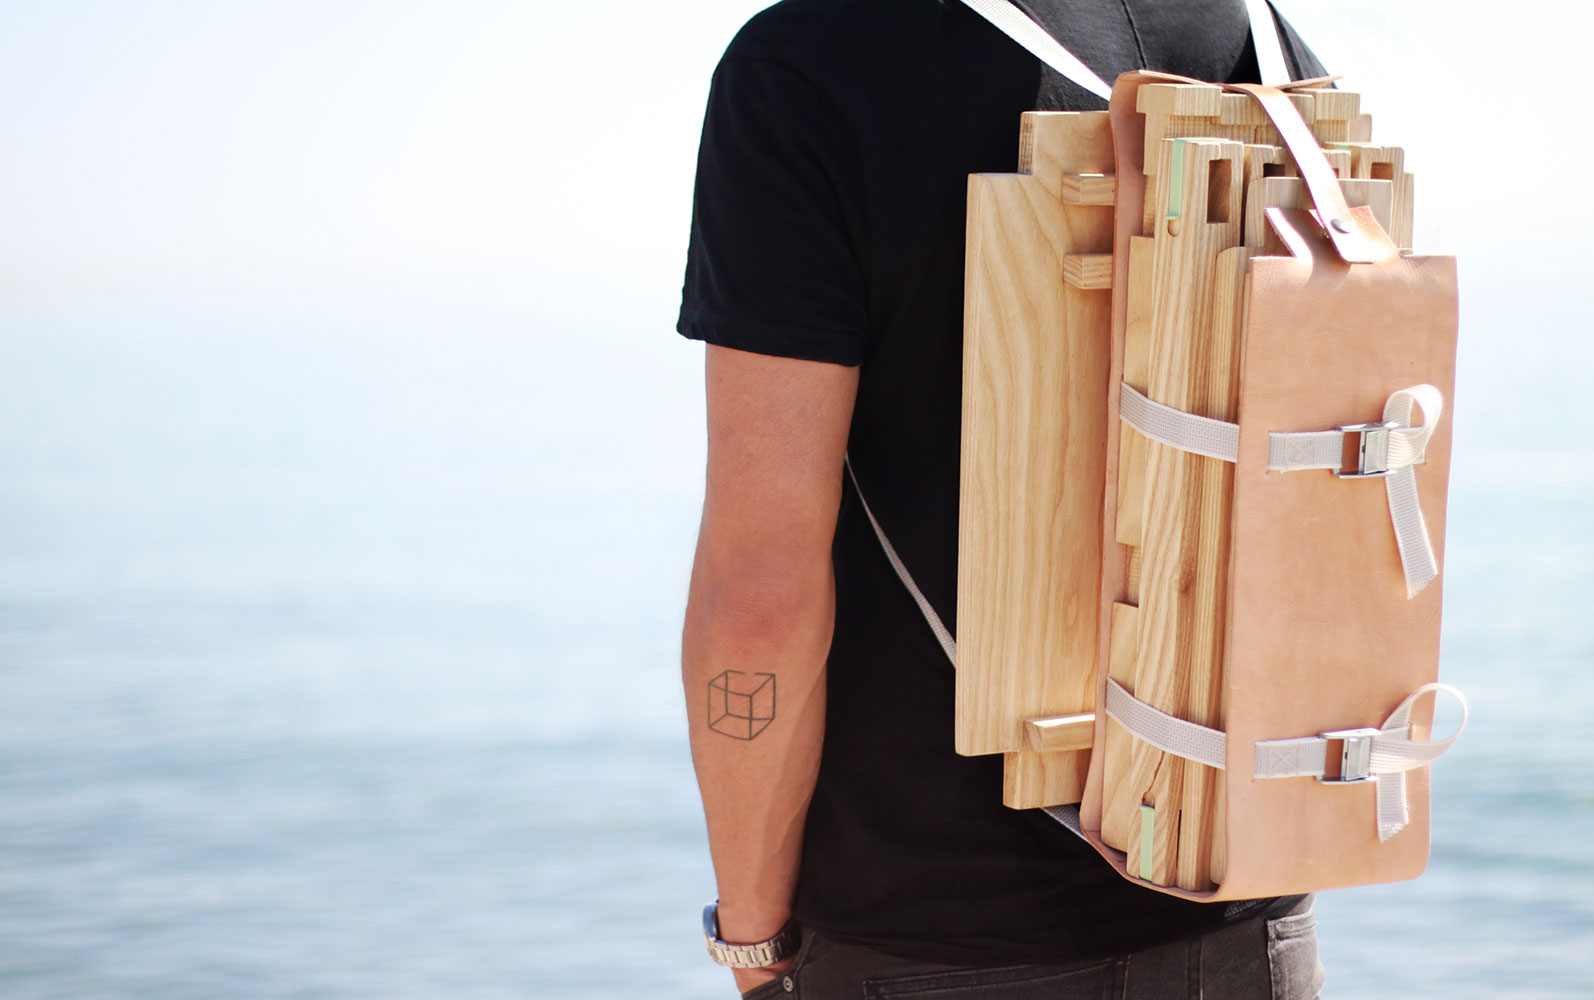 Jorge Penadés'  Nomadic Chair , seen unassembled, and portable here.